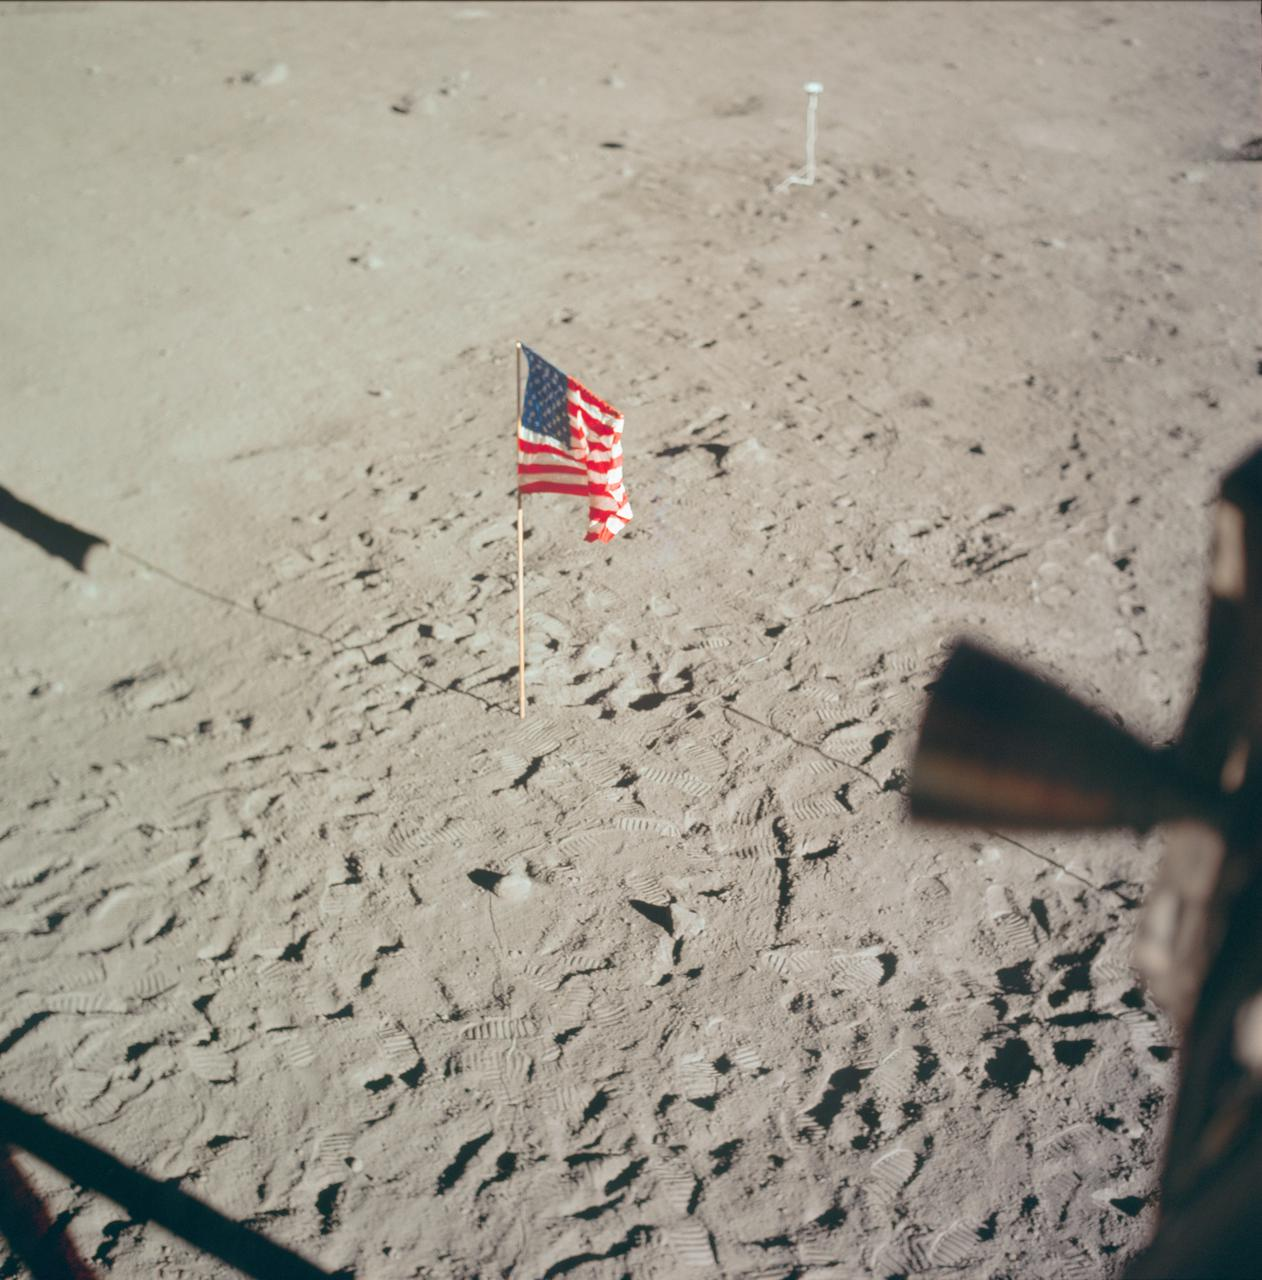 Flag of the U.S. deployed on surface of the Moon